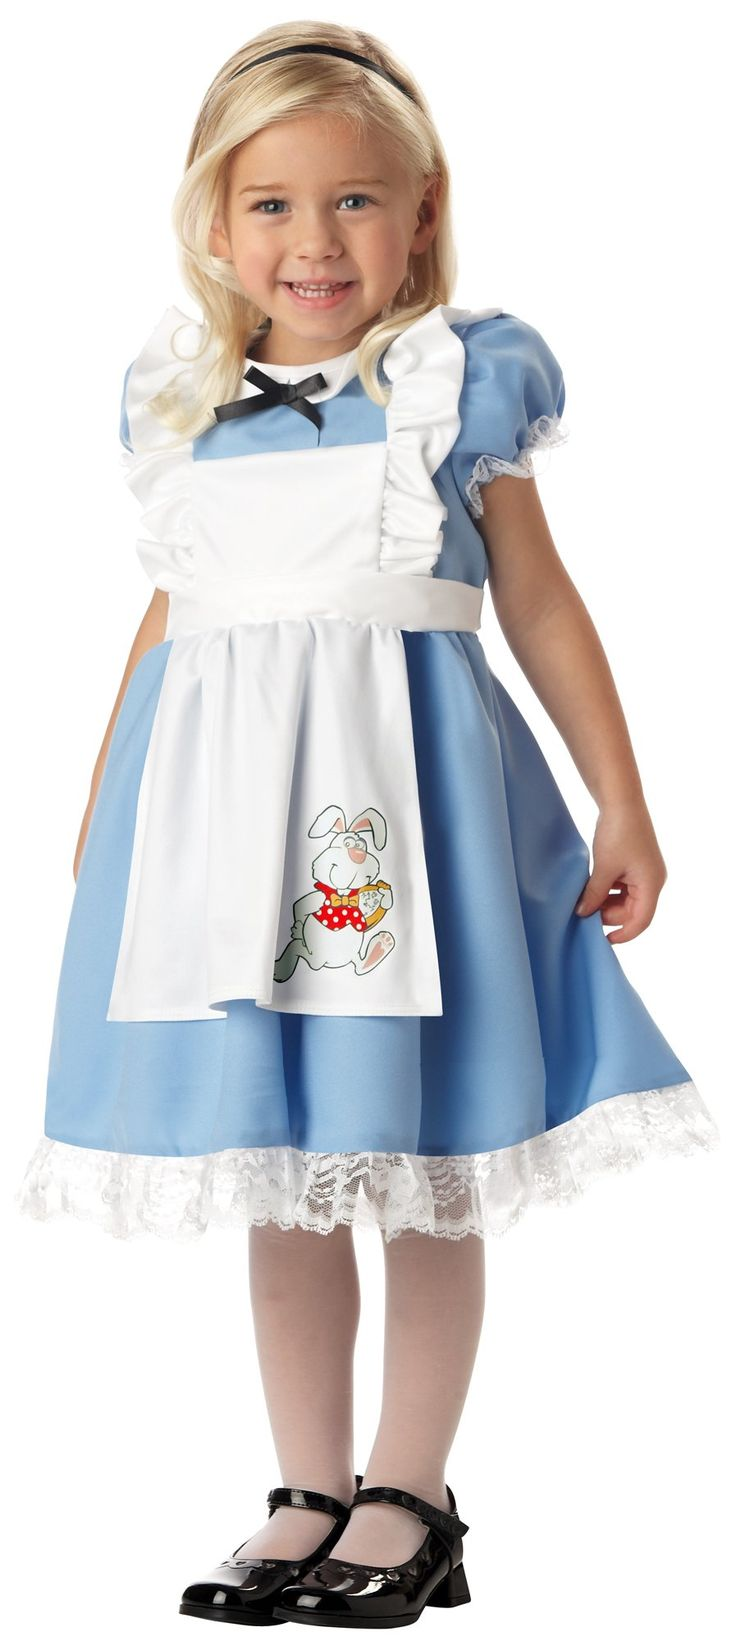 Little alice in wonderland toddler costume includes adorable blue dress with white apron with bunny print and matching black headband